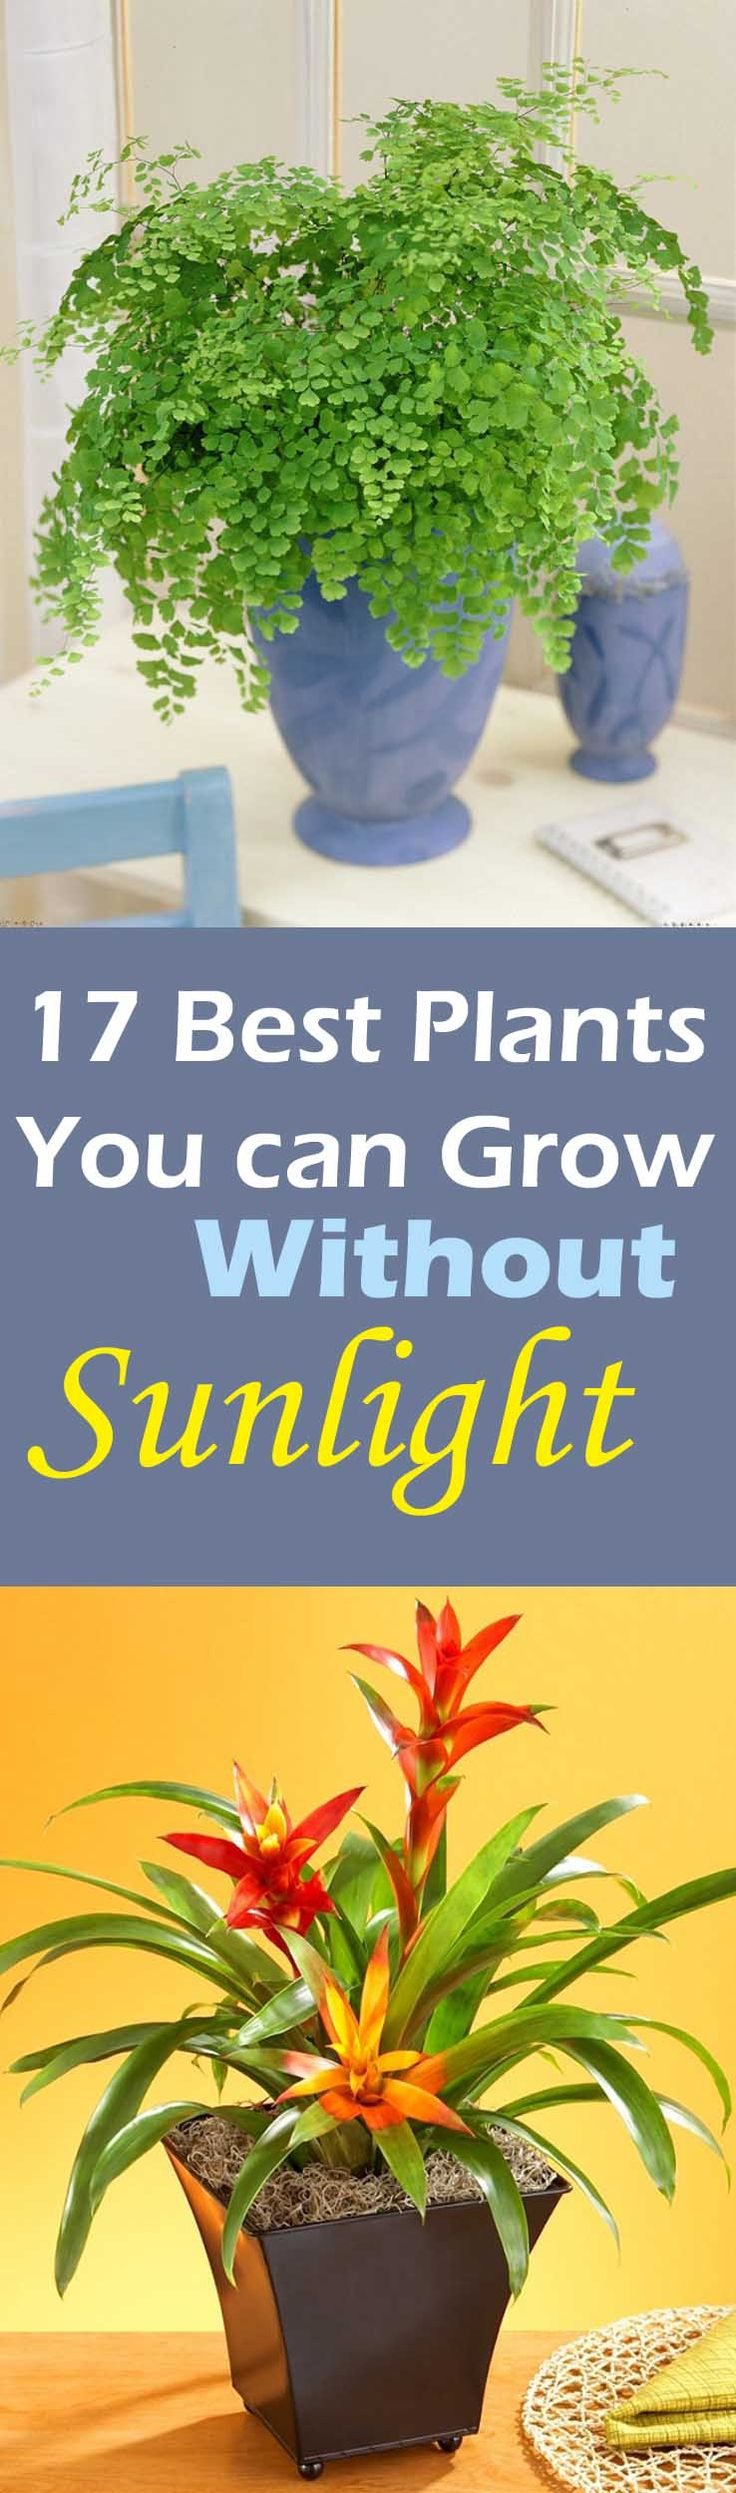 Do you have place in your house that don't receive direct sun or do you want to grow plants in your living room, dining room or